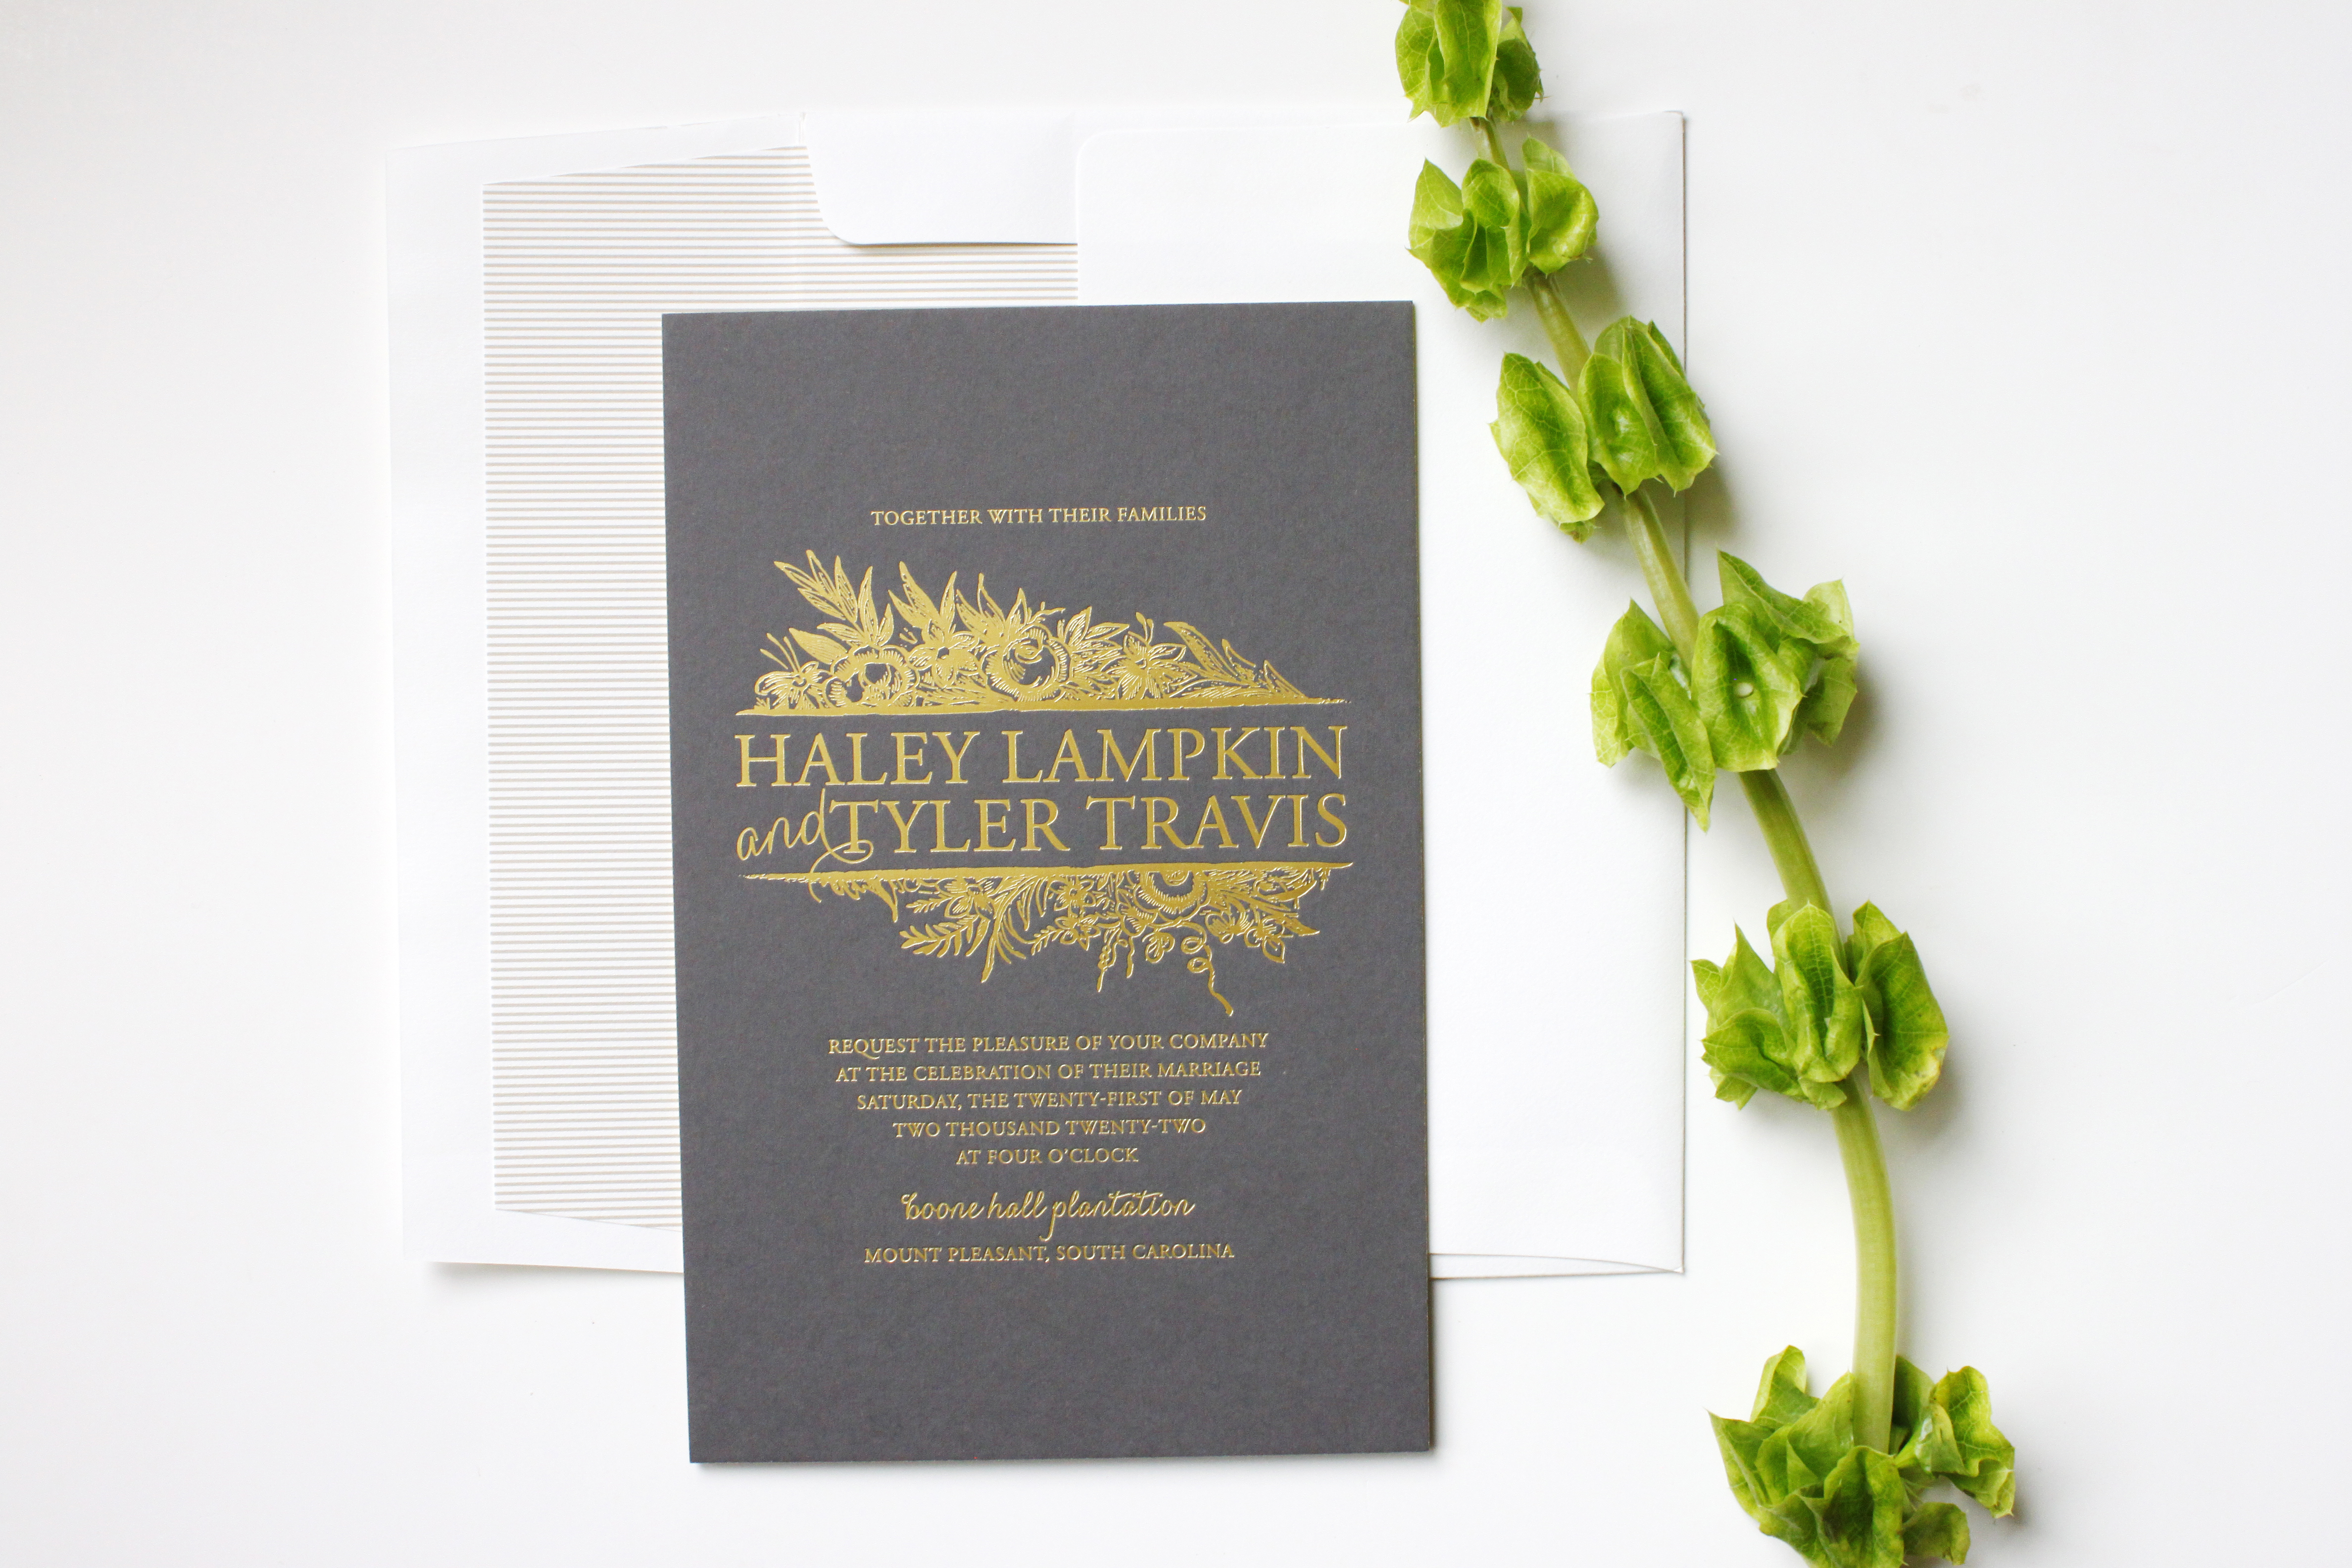 Dark grey wedding invitation with printed gold foil lettering | via Wordshop, Denver CO